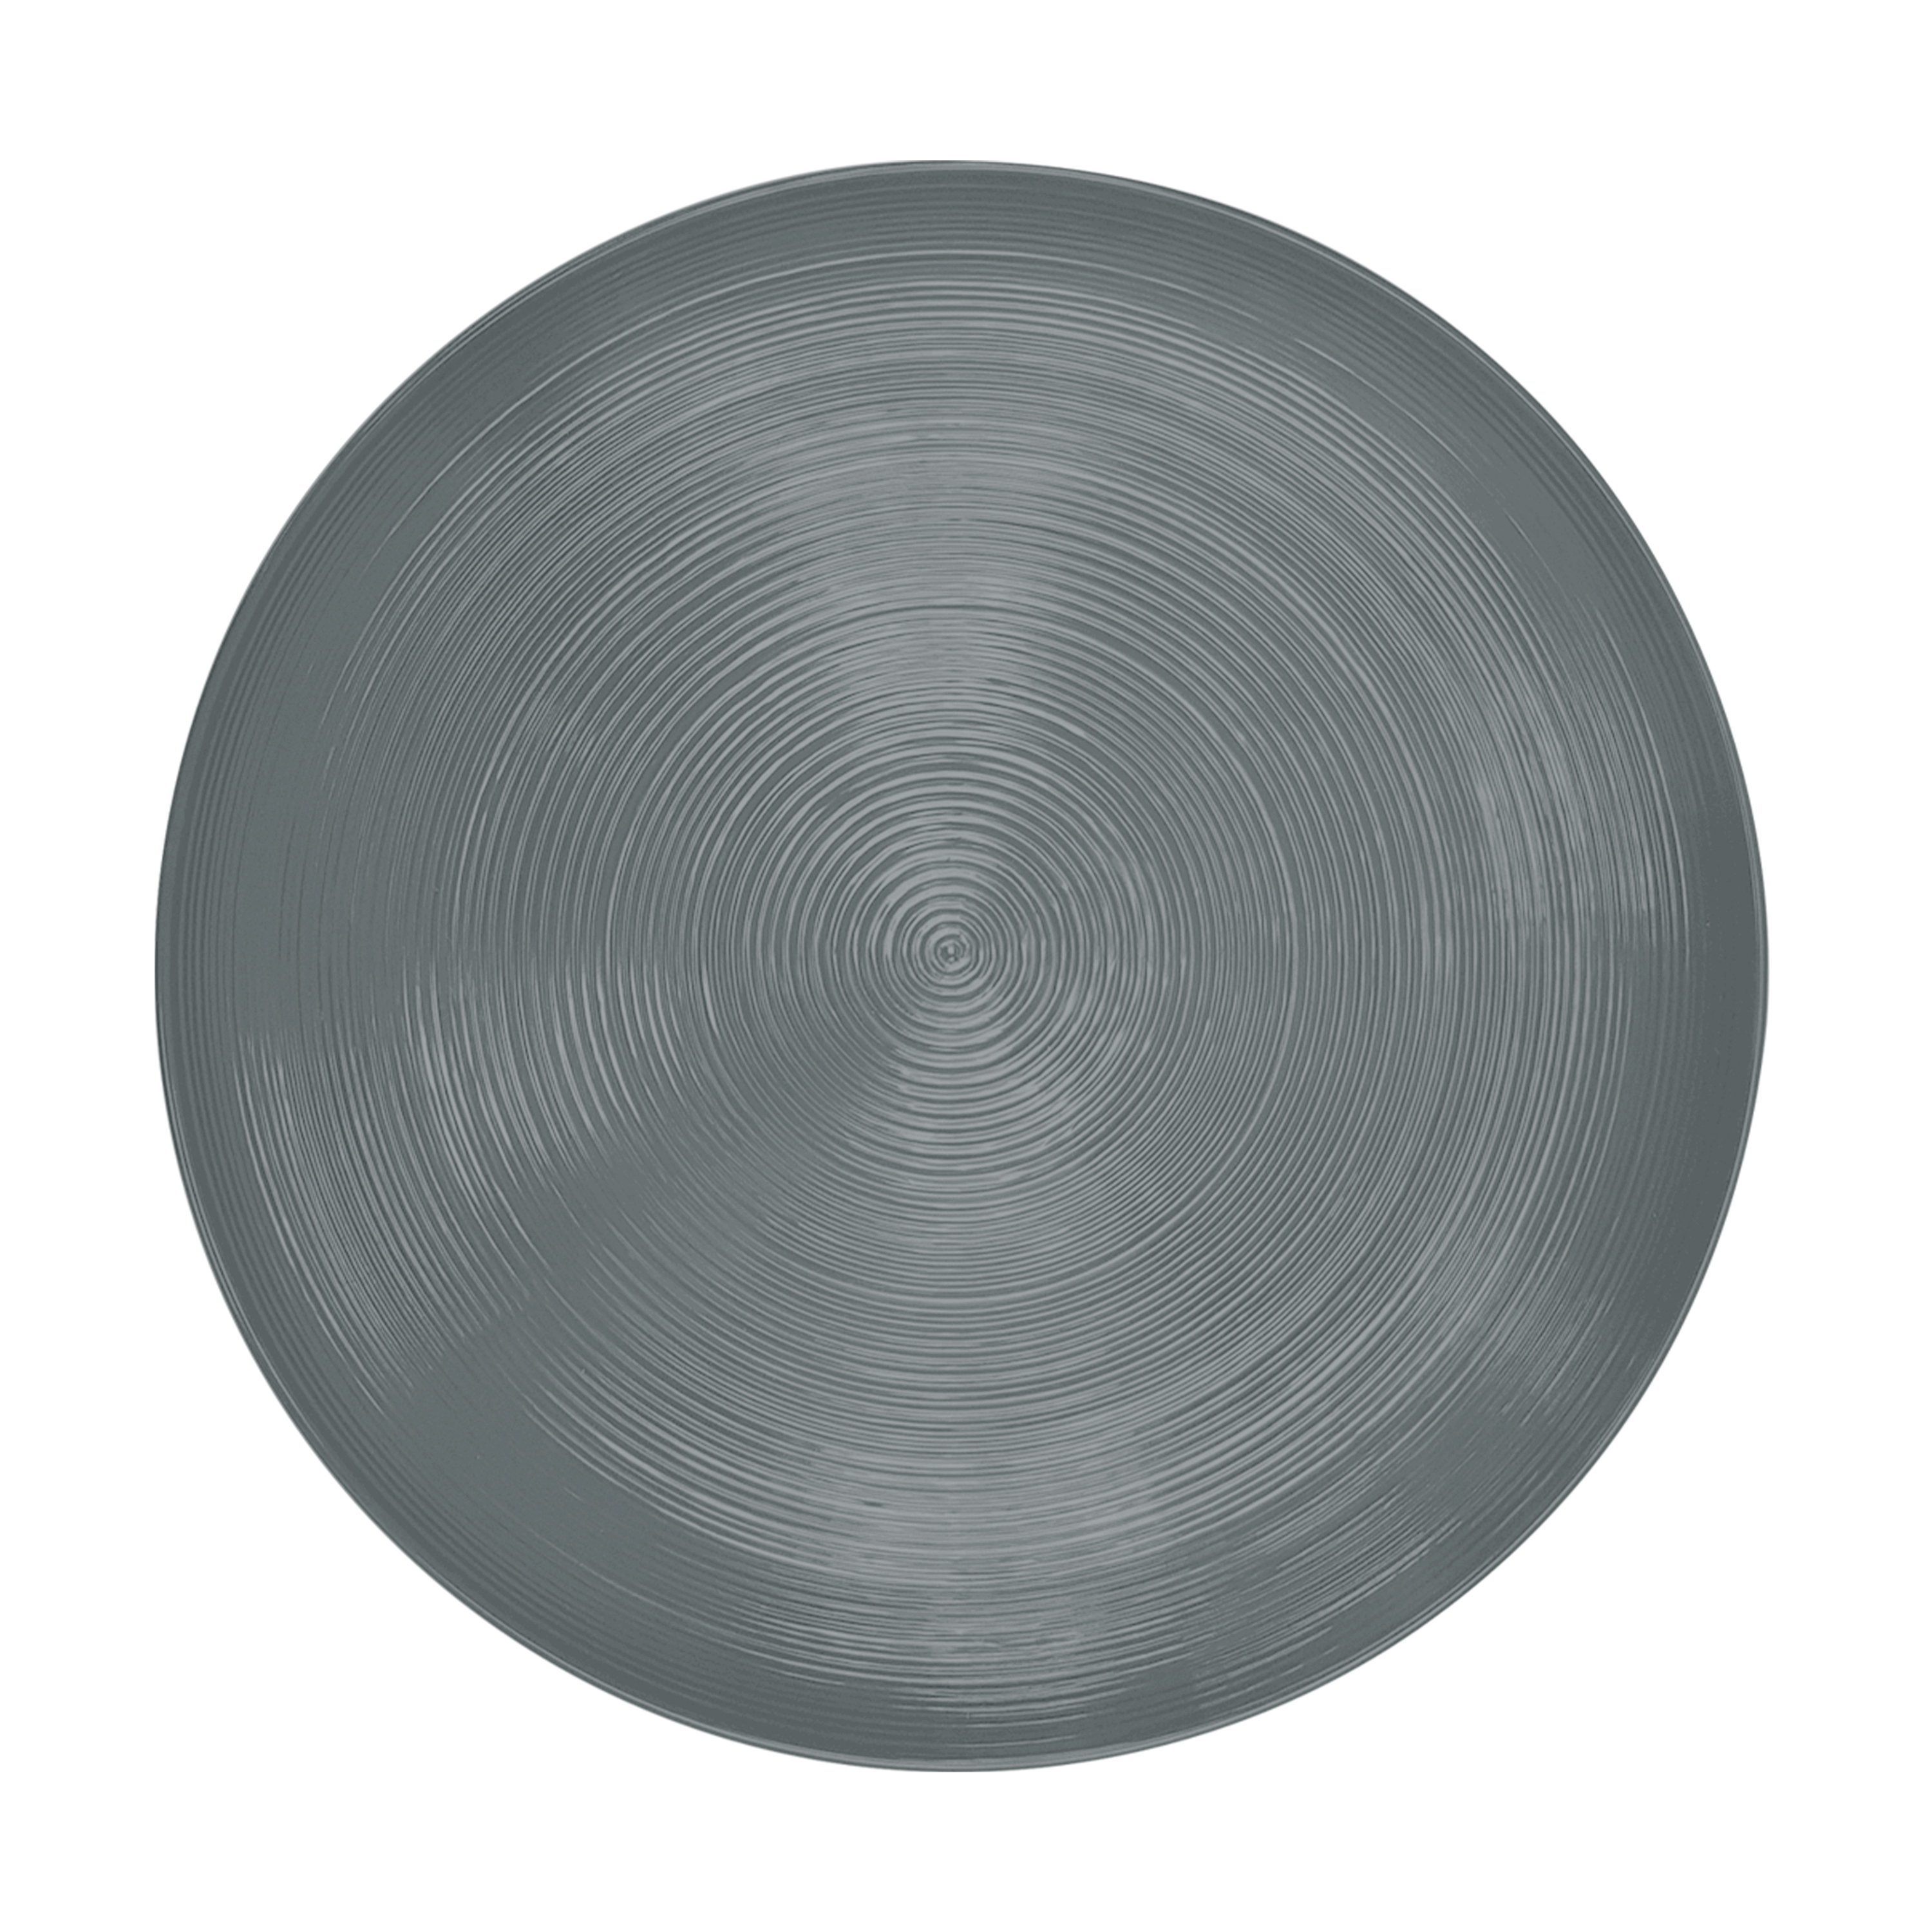 American Conventional Plate & Bowl Sets, Charcoal, 12-piece set slideshow image 4